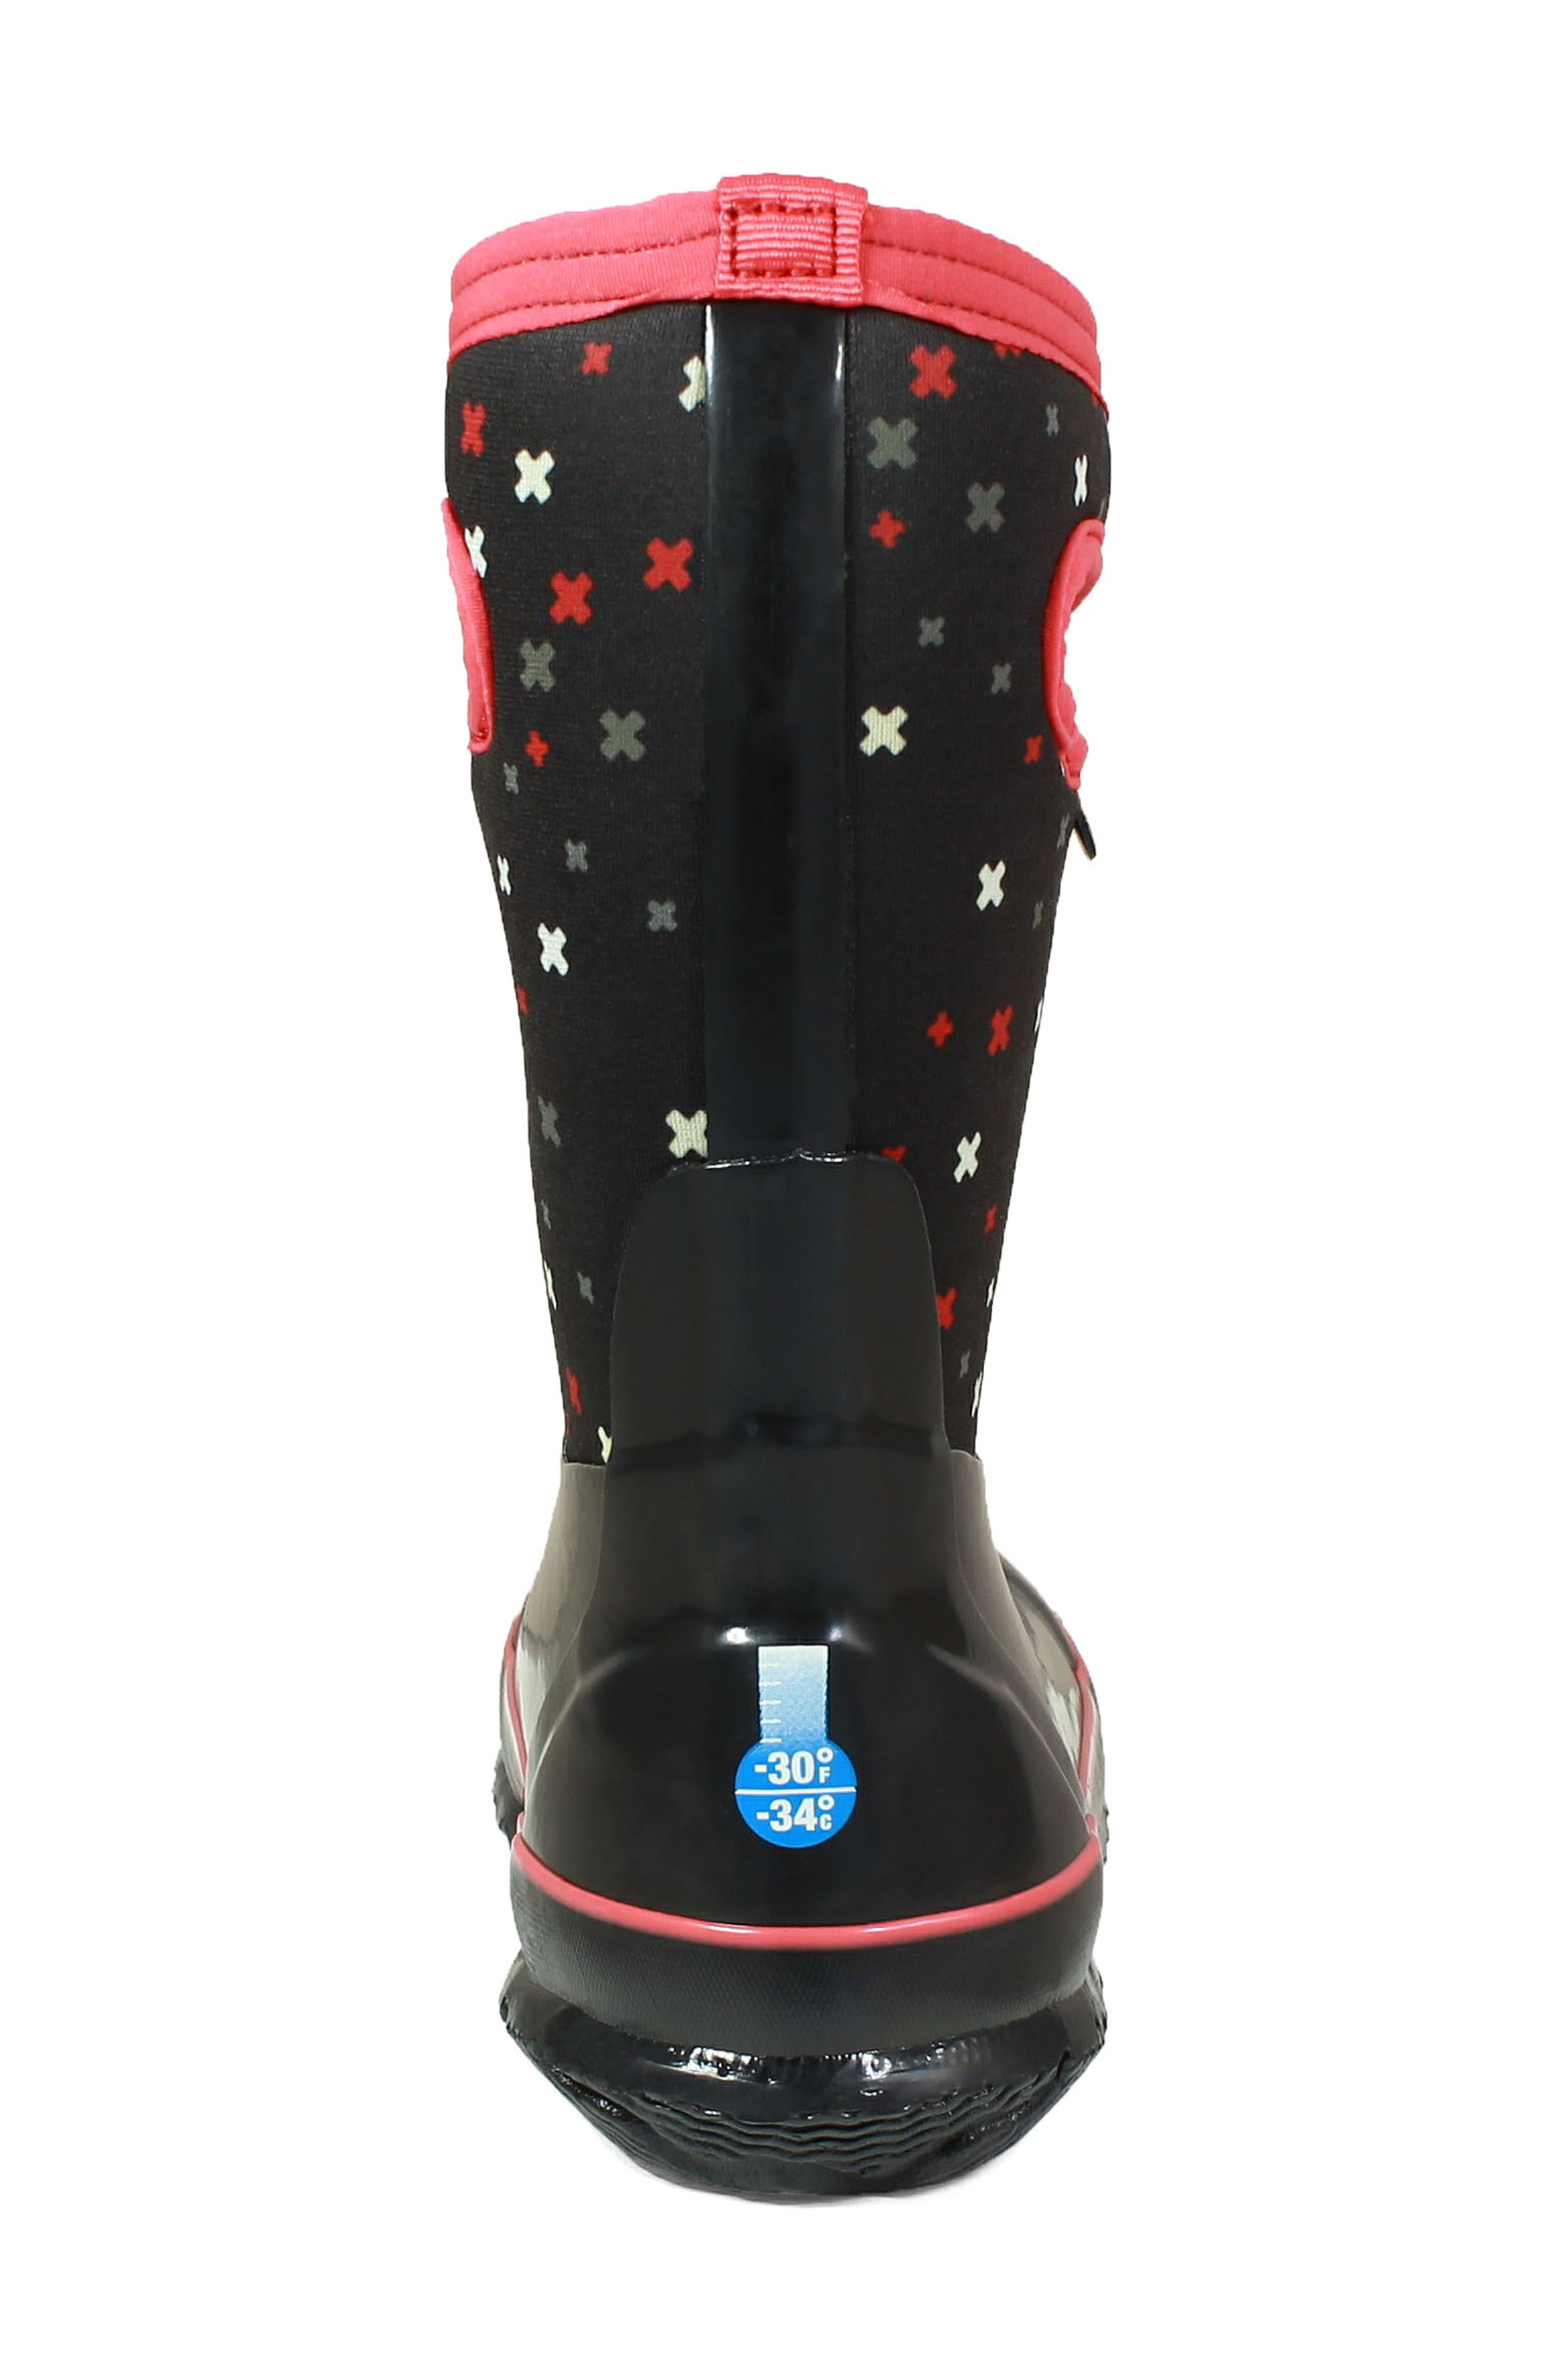 Classic Print Insulated Waterproof Boot,                             Alternate thumbnail 6, color,                             009